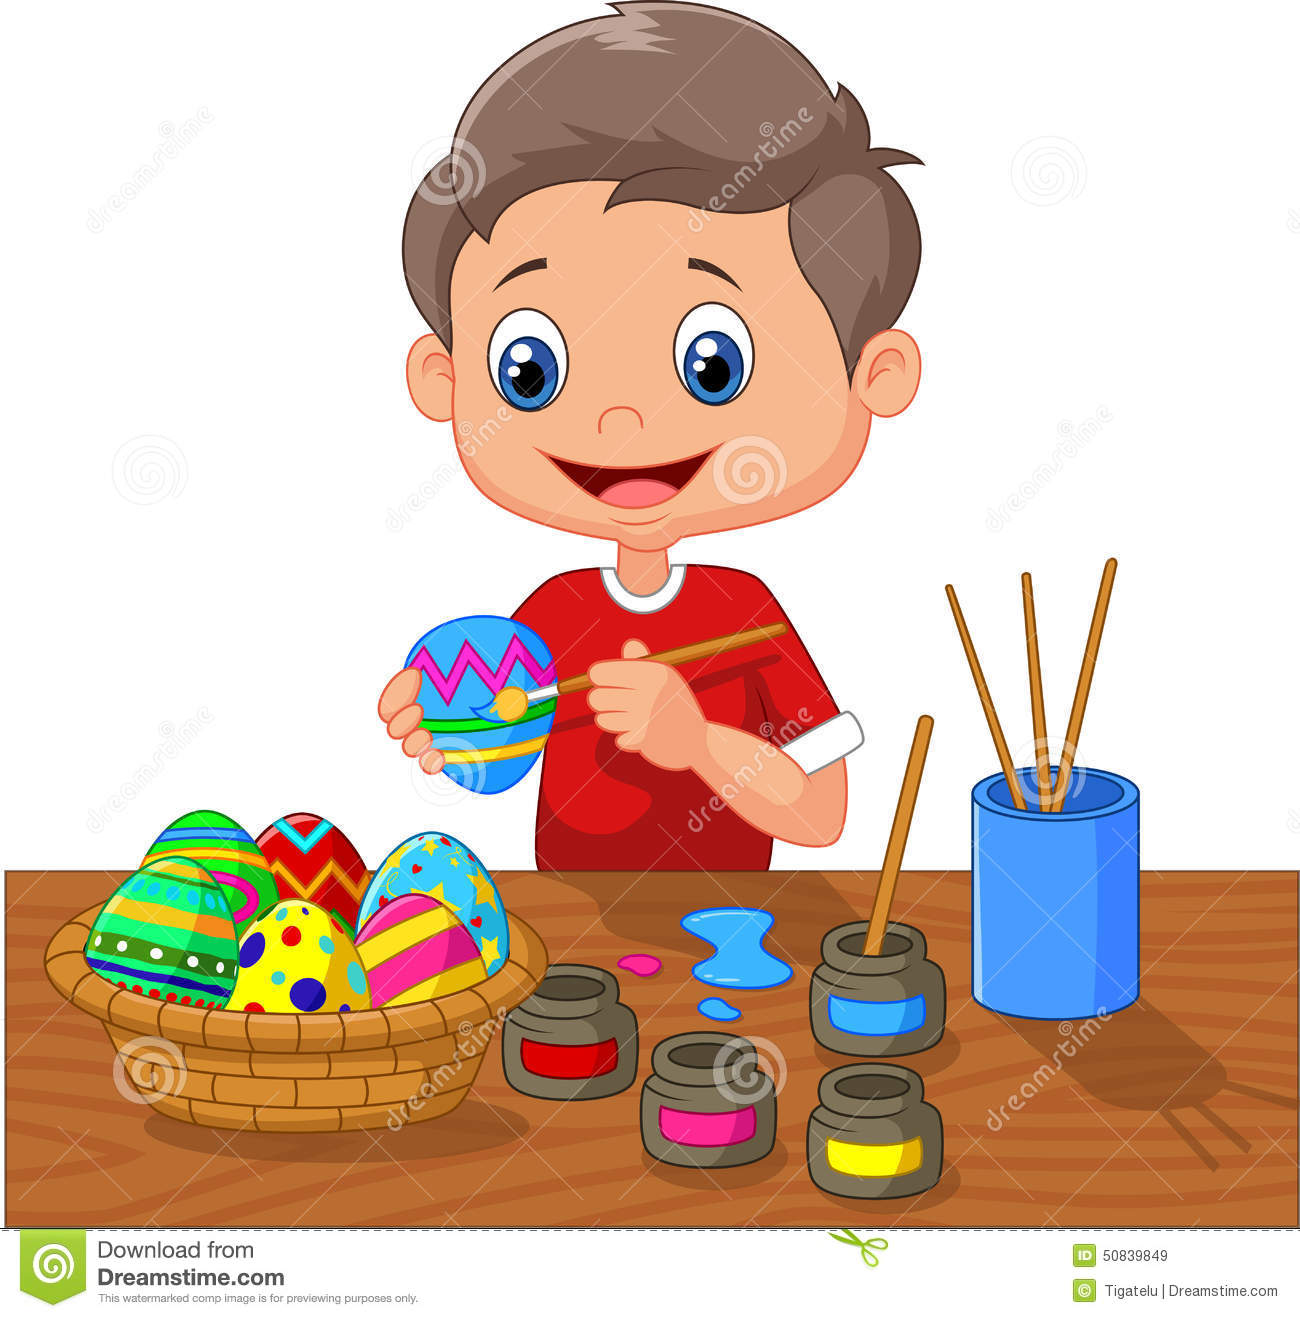 Easter egg clipart to paint.